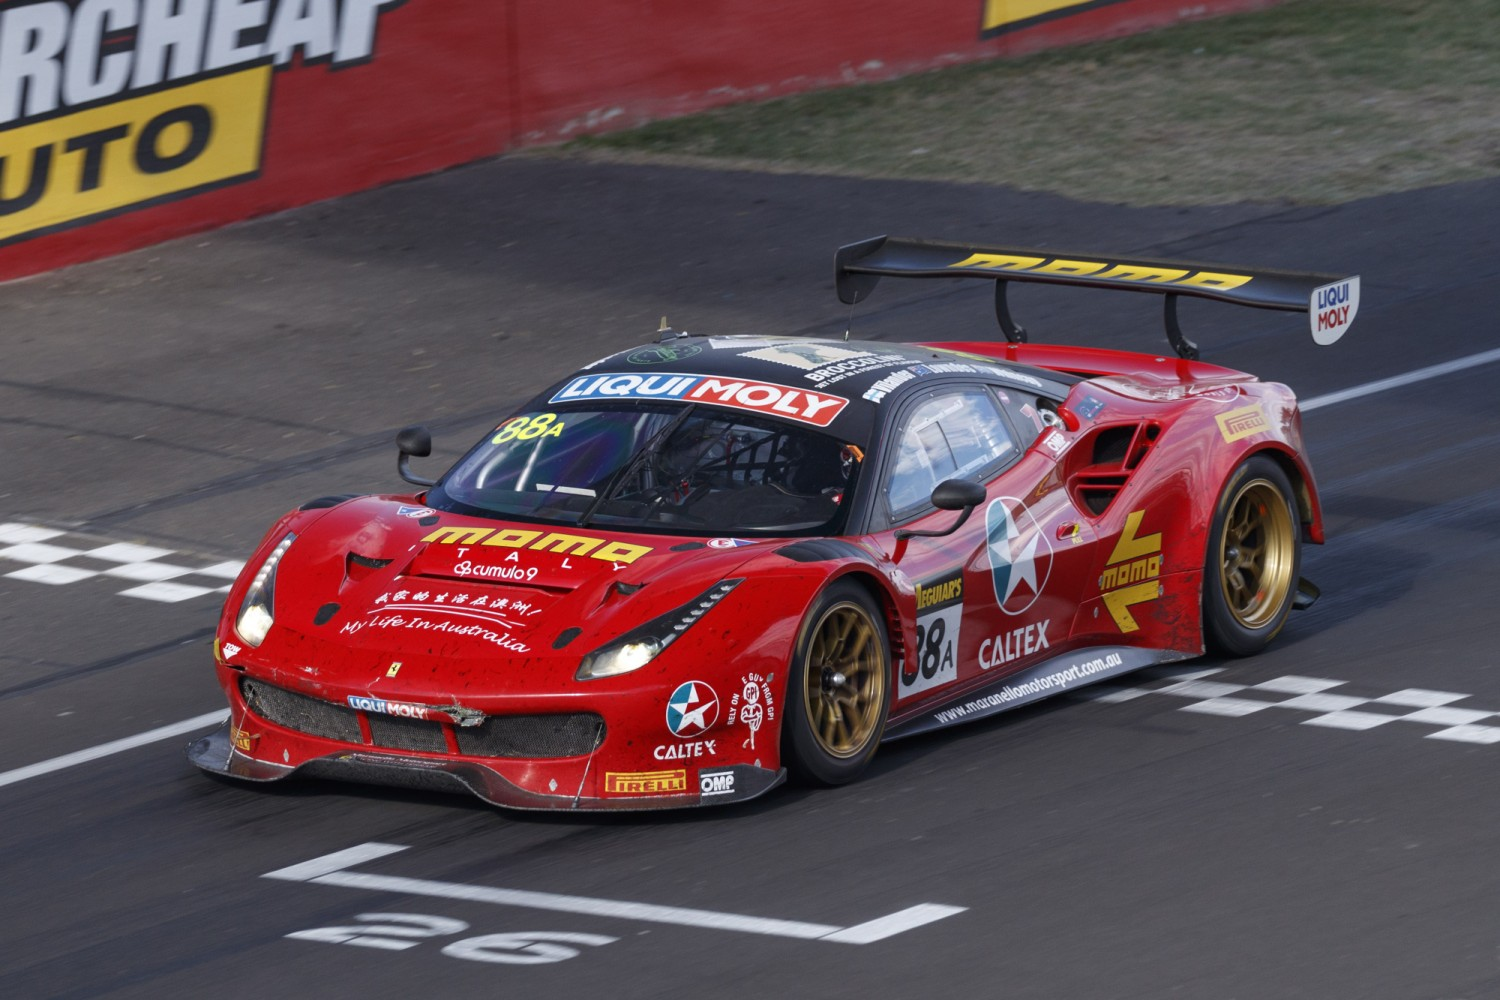 Ferrari heads to Total 24 Hours of Spa as leader in the Intercontinental GT Challenge